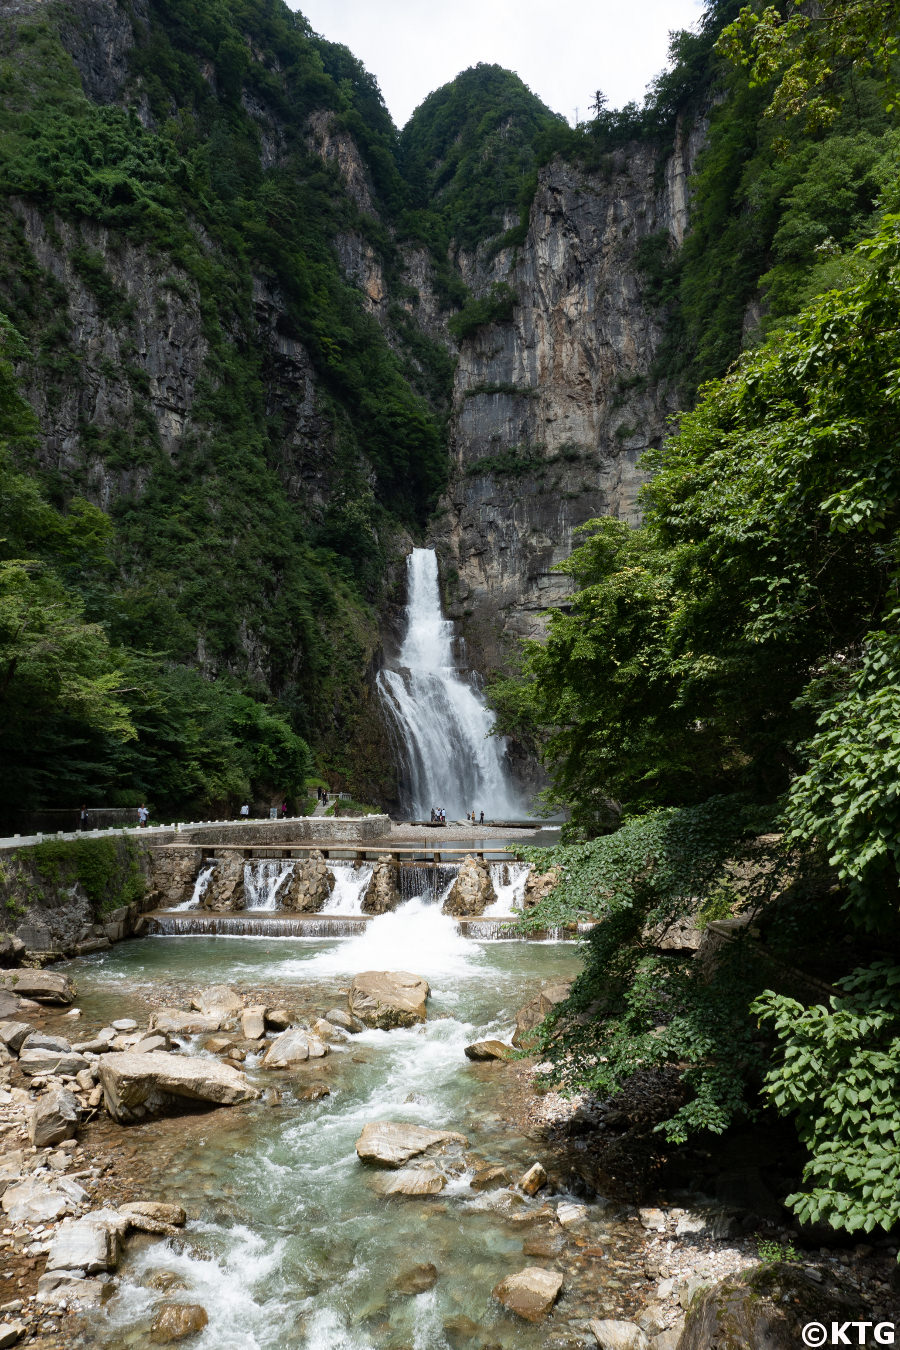 Ullim waterfalls in North Korea (DPRK) with KTG Tours